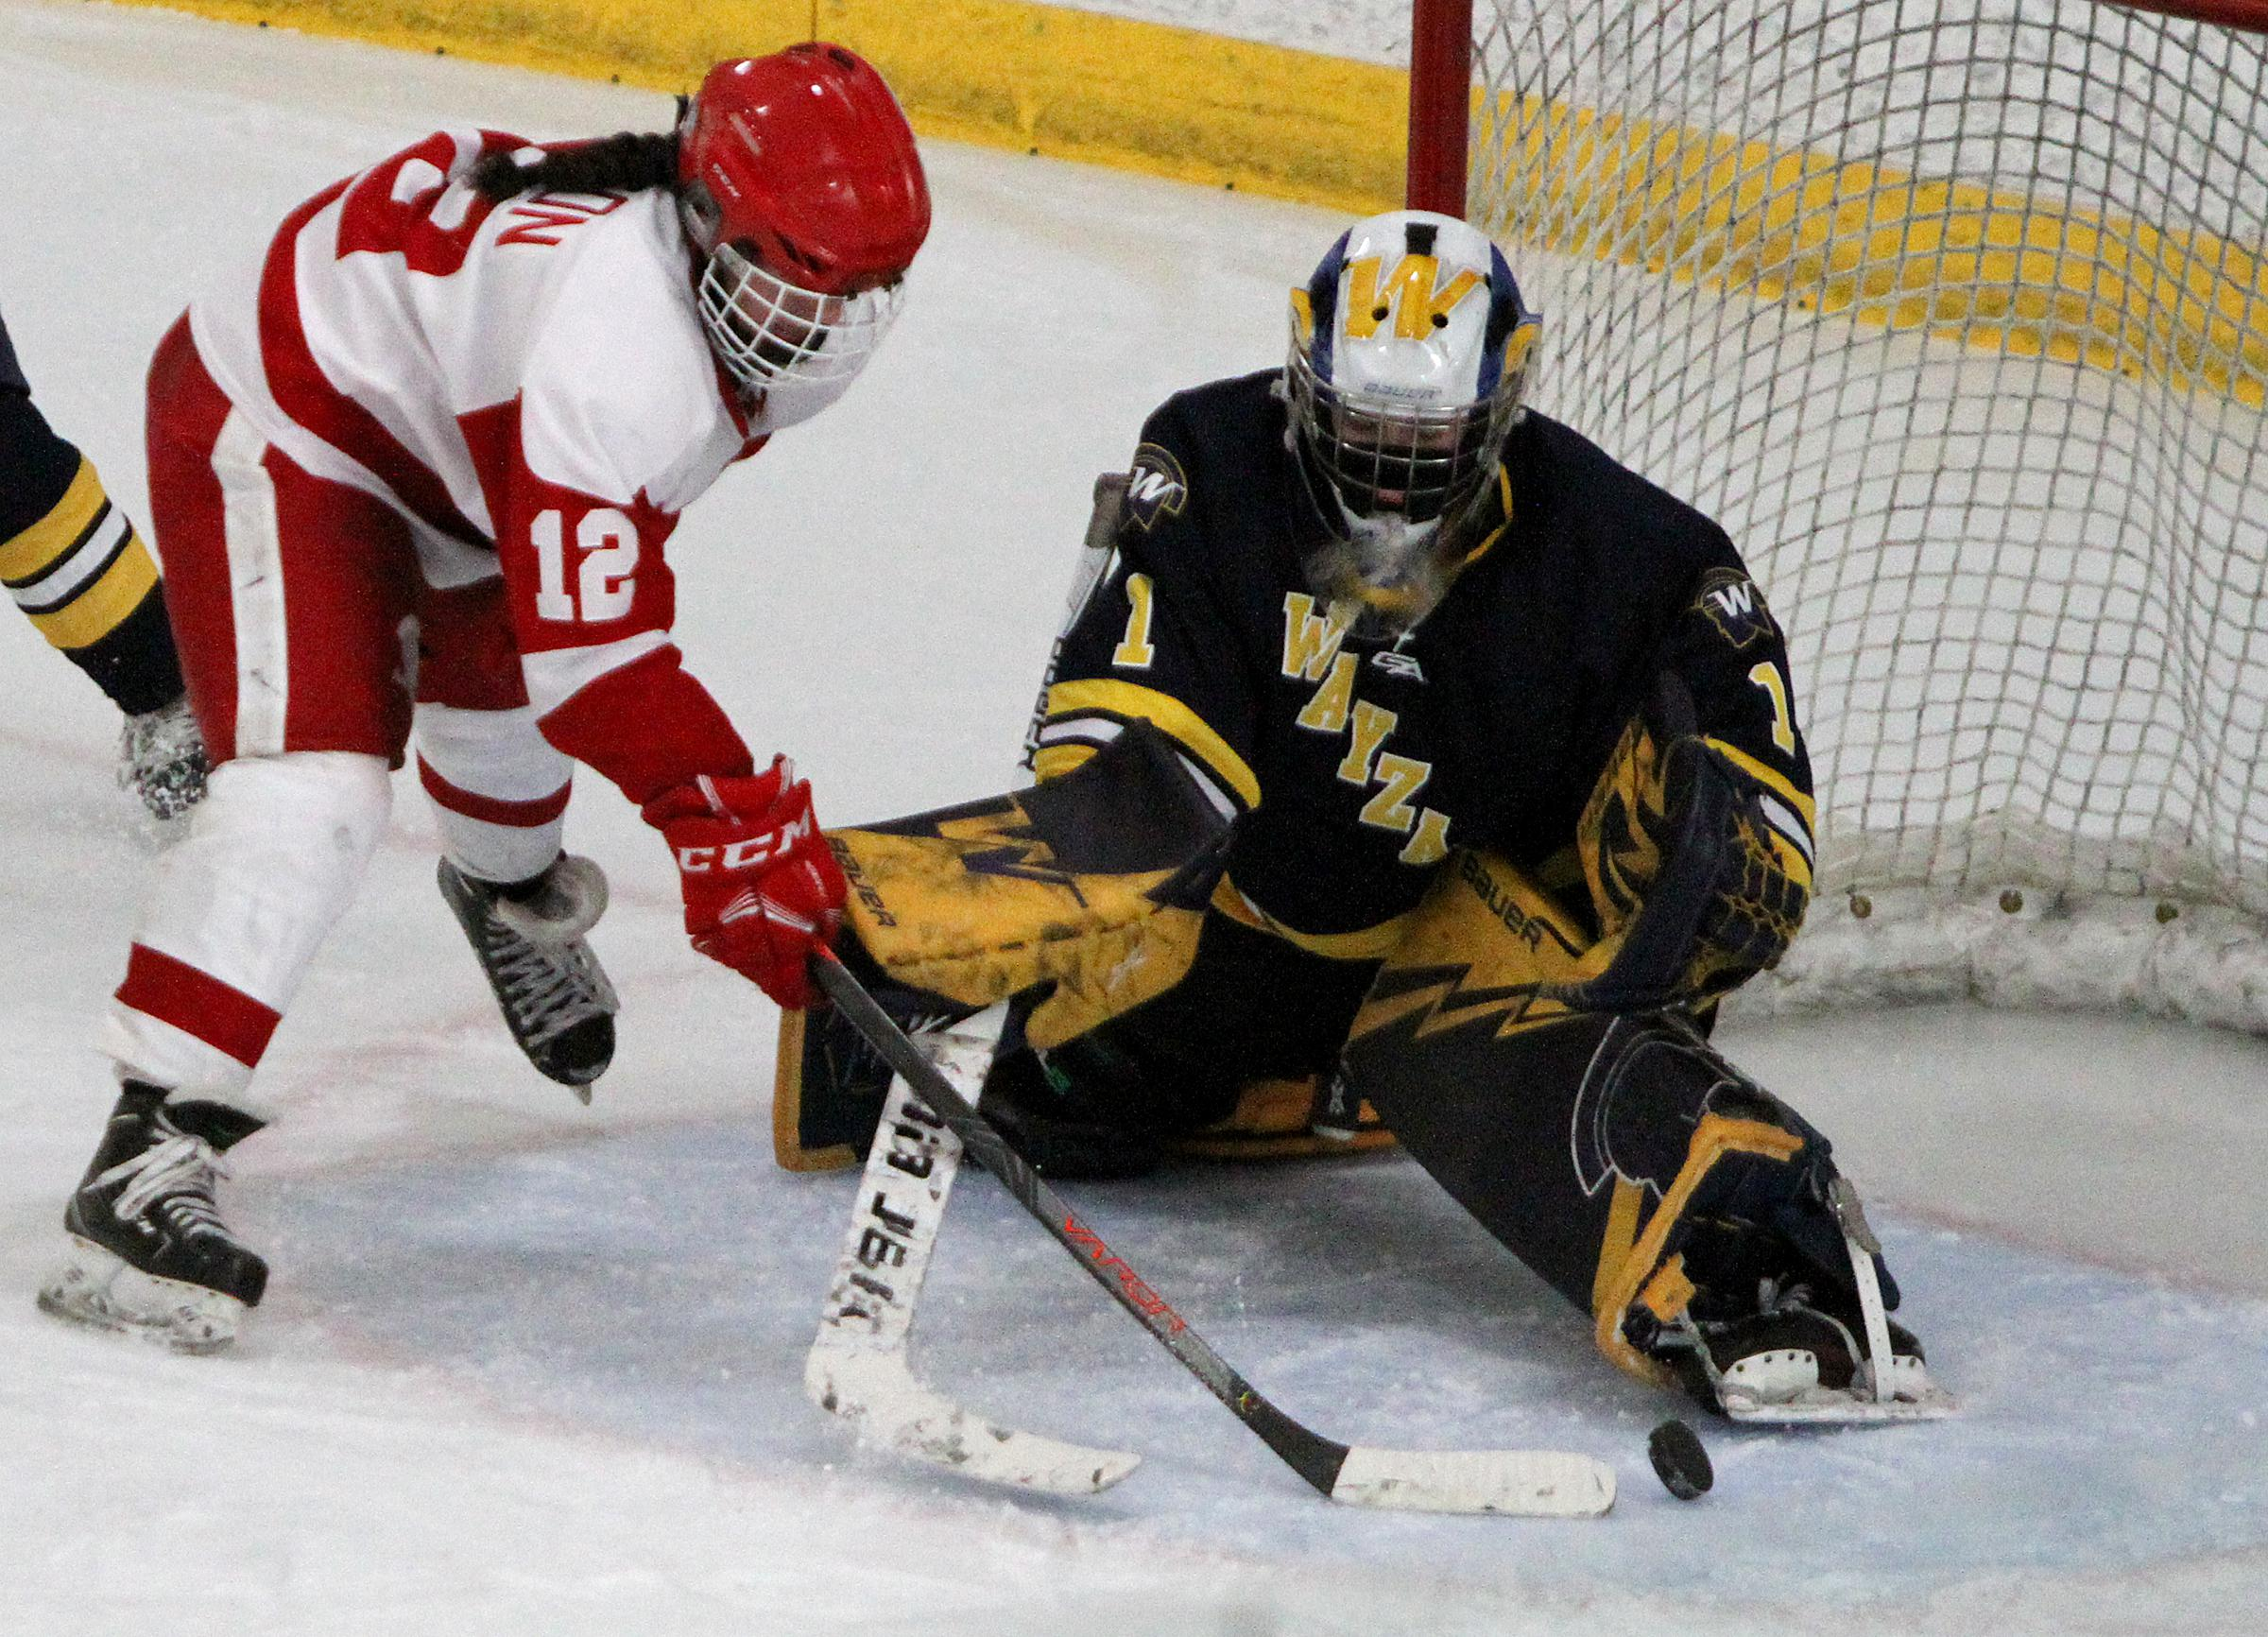 Wayzata junior goaltender Annika Lavender turns aside a high-scoring chance from Red Knights senior forward Lucy Hanson during the third period. Lavender stopped 44 shots in the Trojans' 4-2 playoff loss. Photo by Drew Herron, SportsEngine